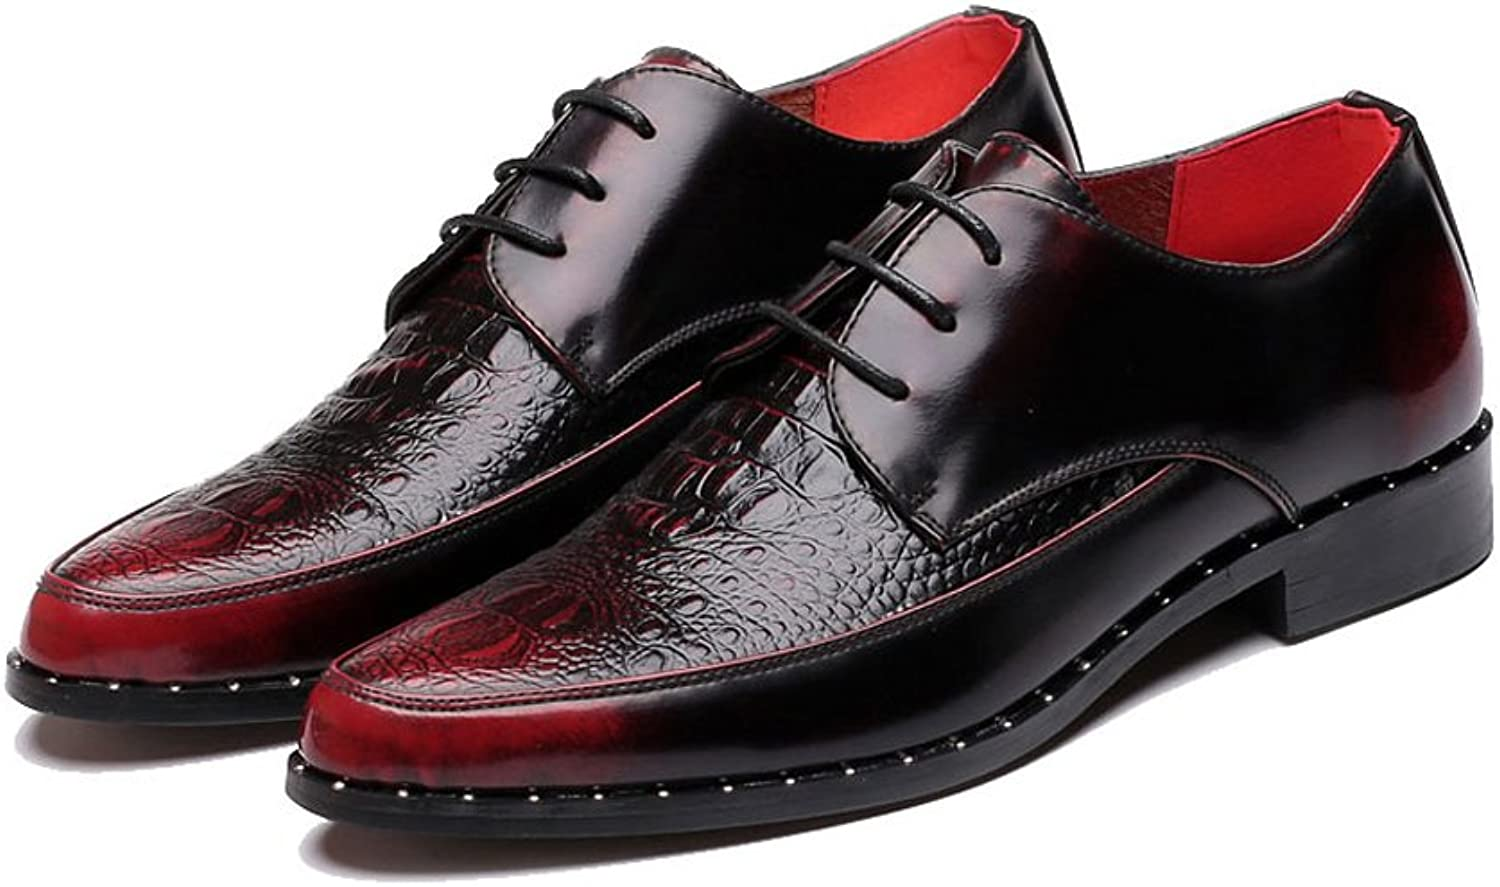 XHD- Classic shoes Business Formal Men's Crocodile Skin Leather Upper shoes